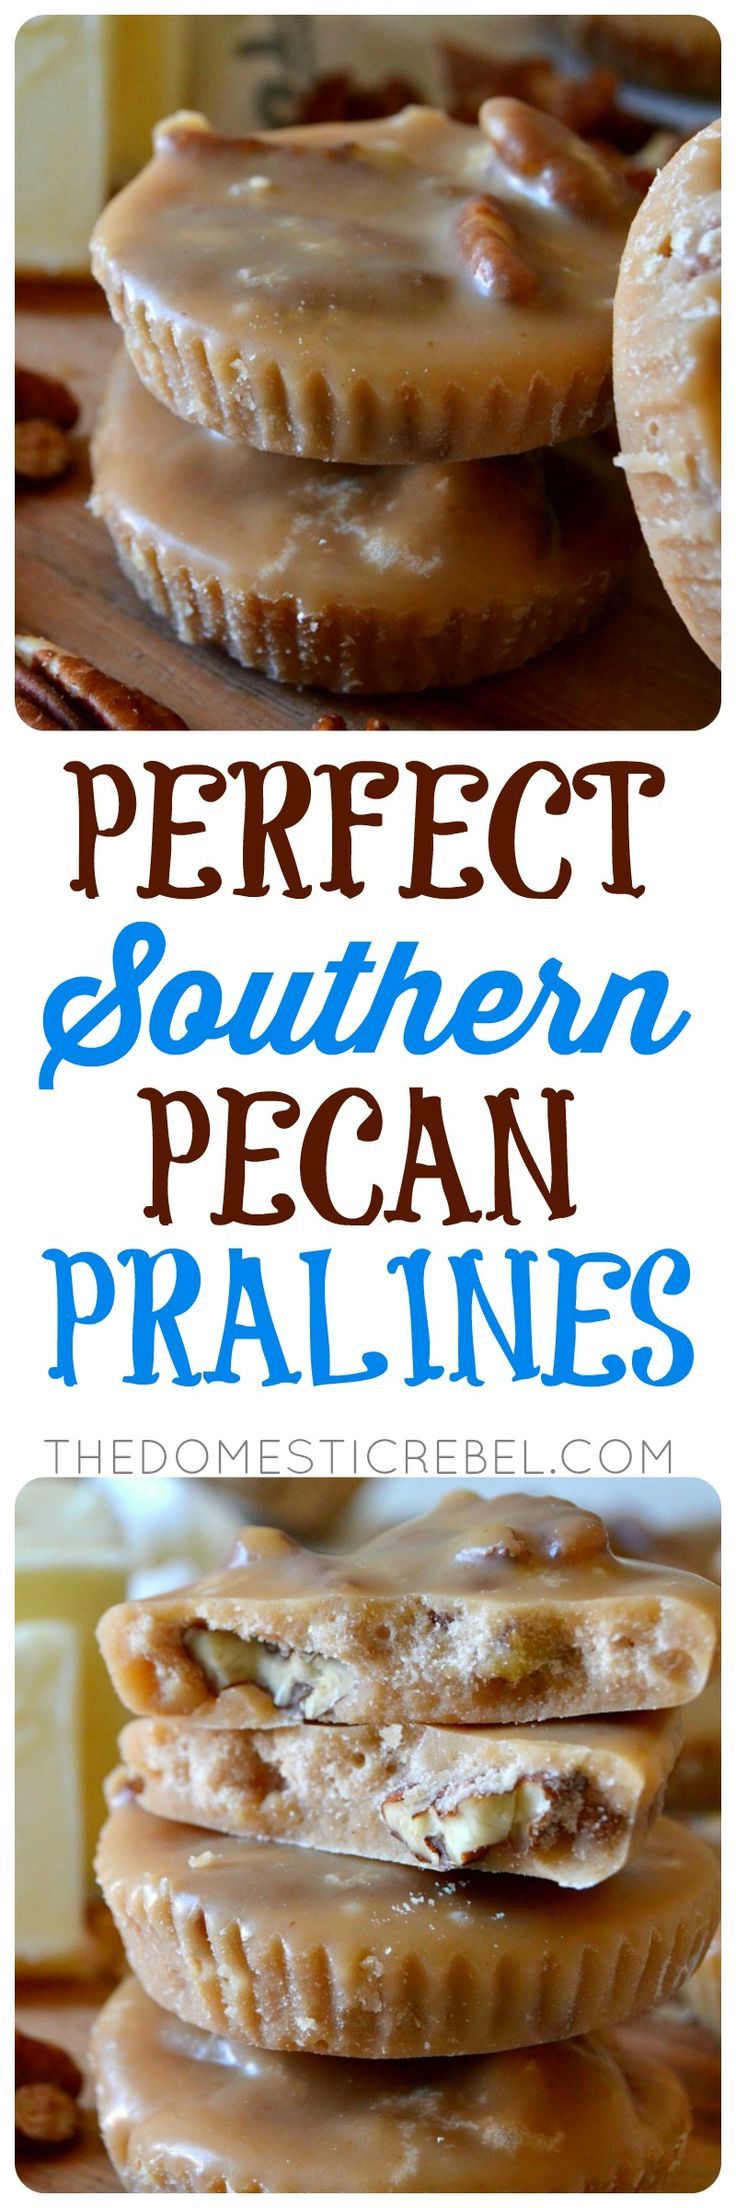 Southern-style Pecan Pralines | The Domestic Rebel | Buttery, nutty and filled with brown sugar, toasted pecan and vanilla flavors, they practically melt-in-your-mouth with this foolproof recipe!